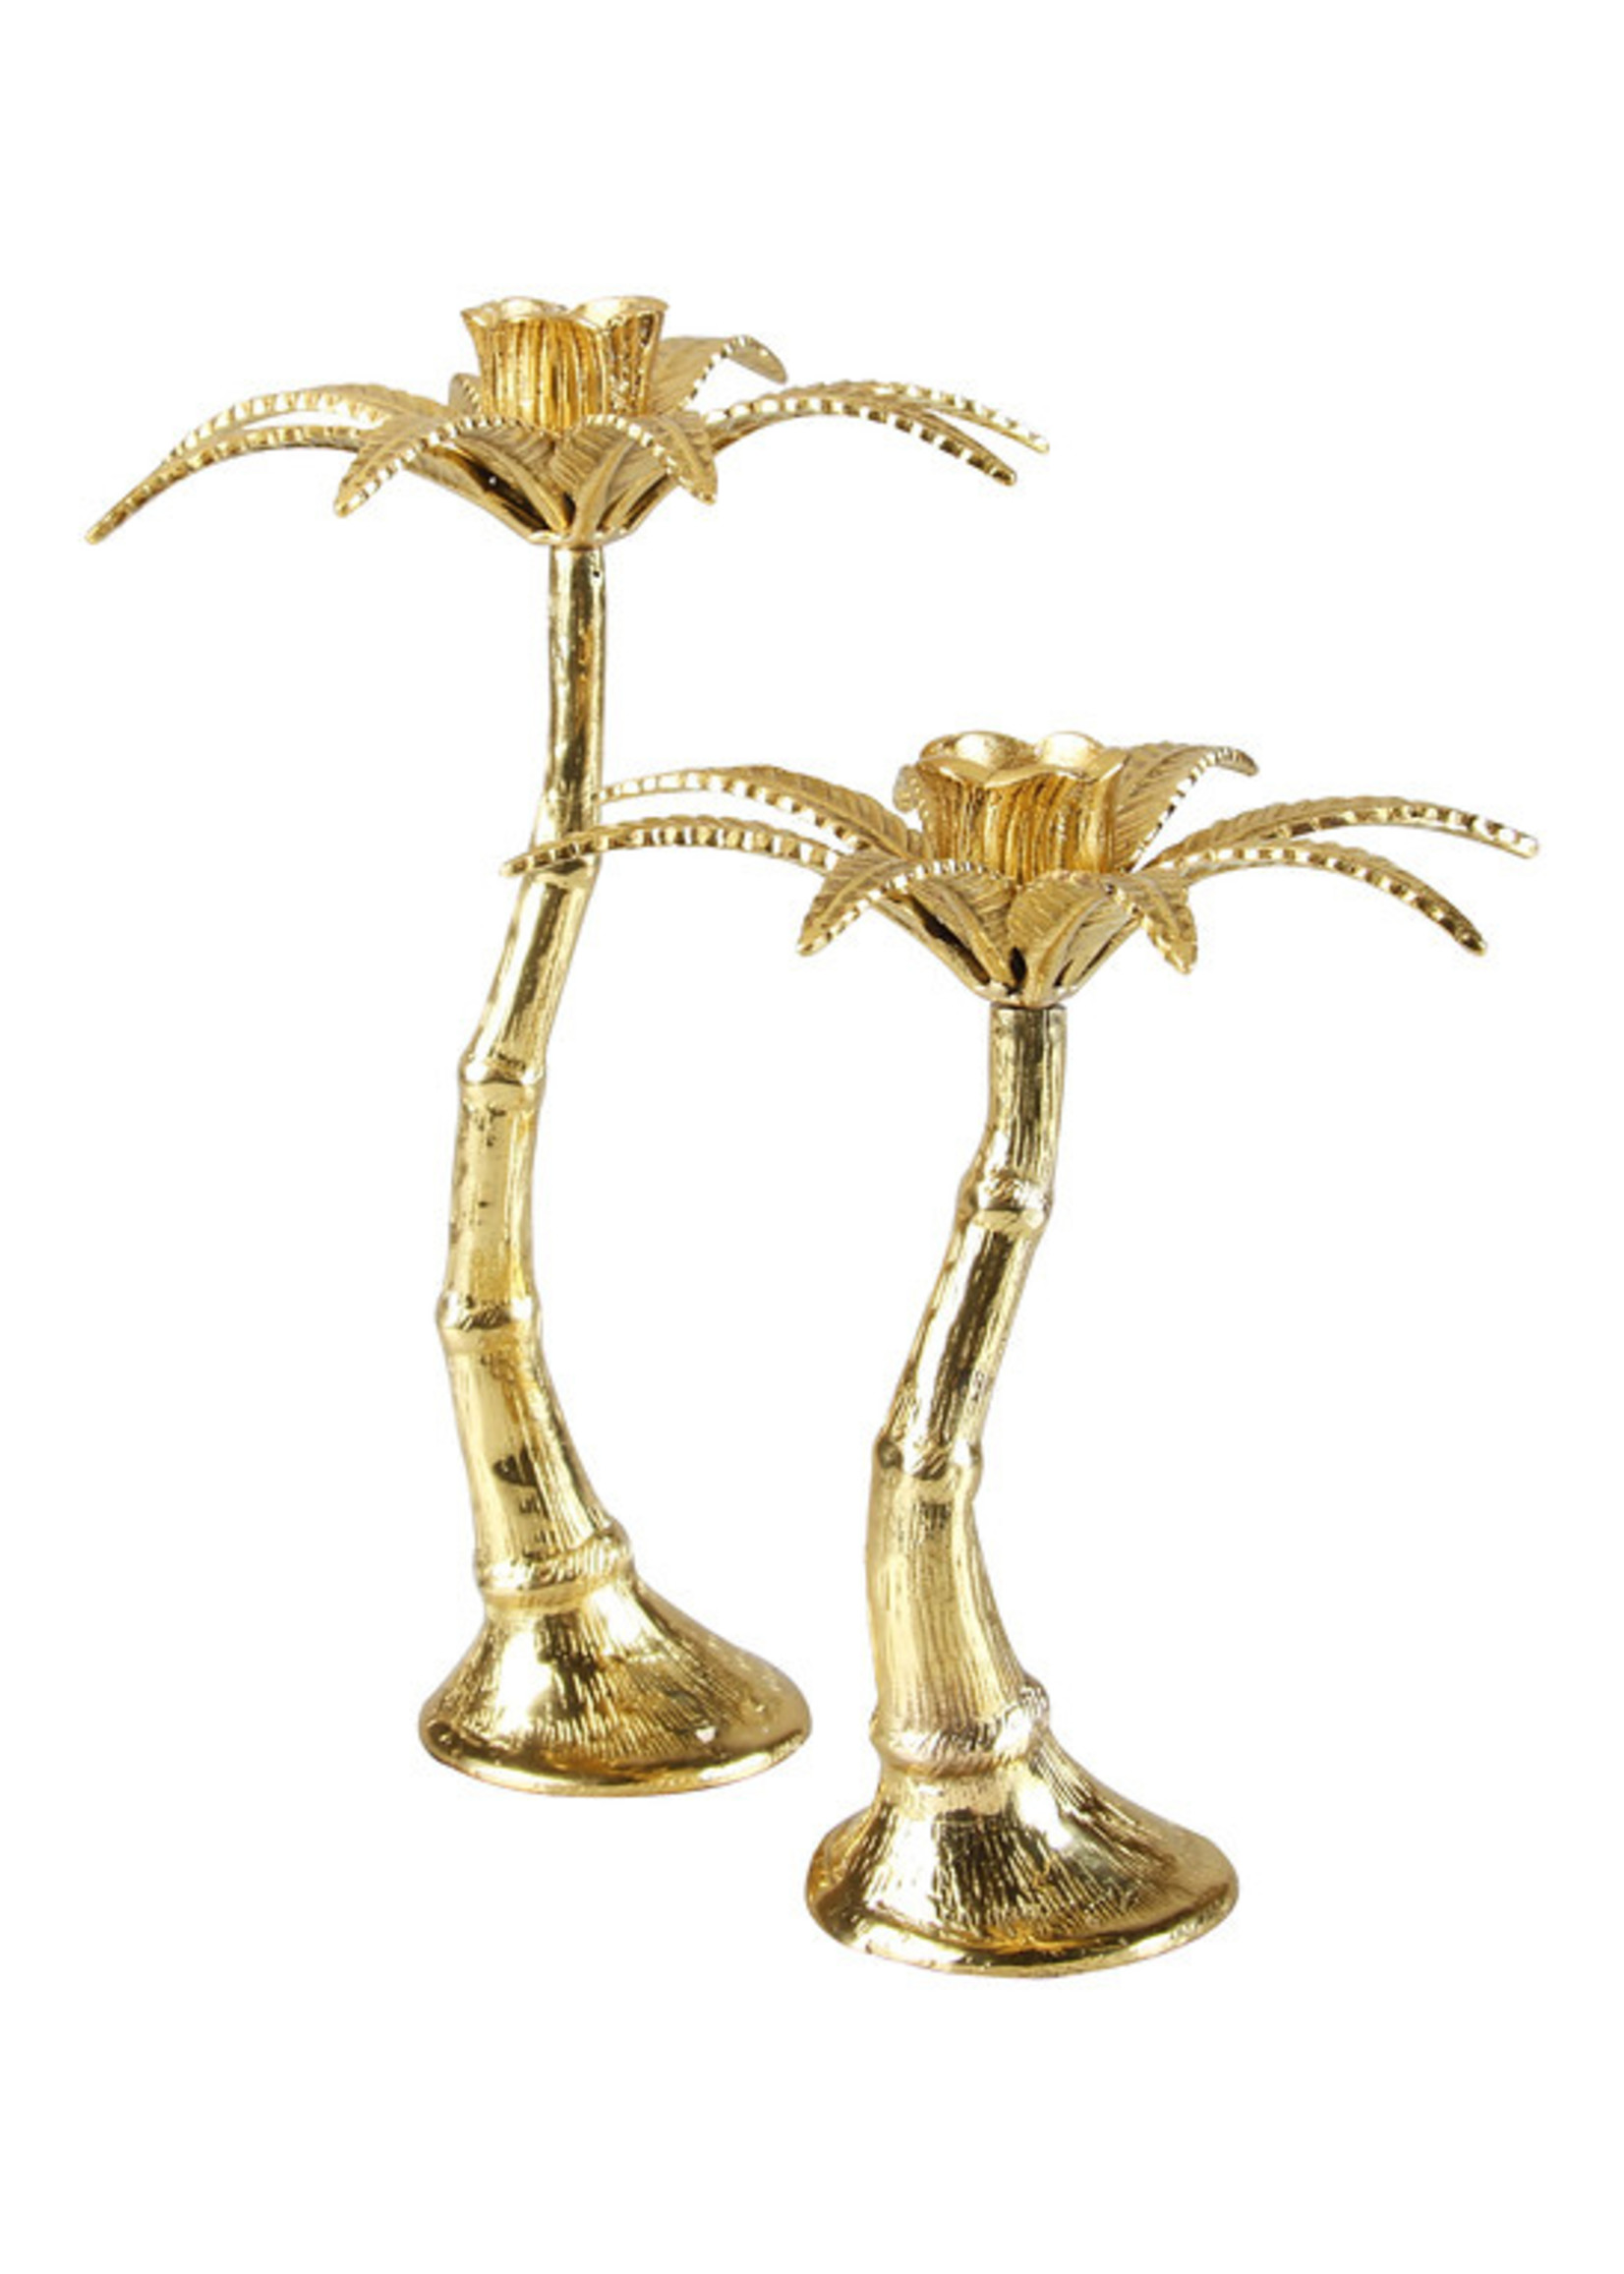 &Klevering Palm tree candle holder brass small